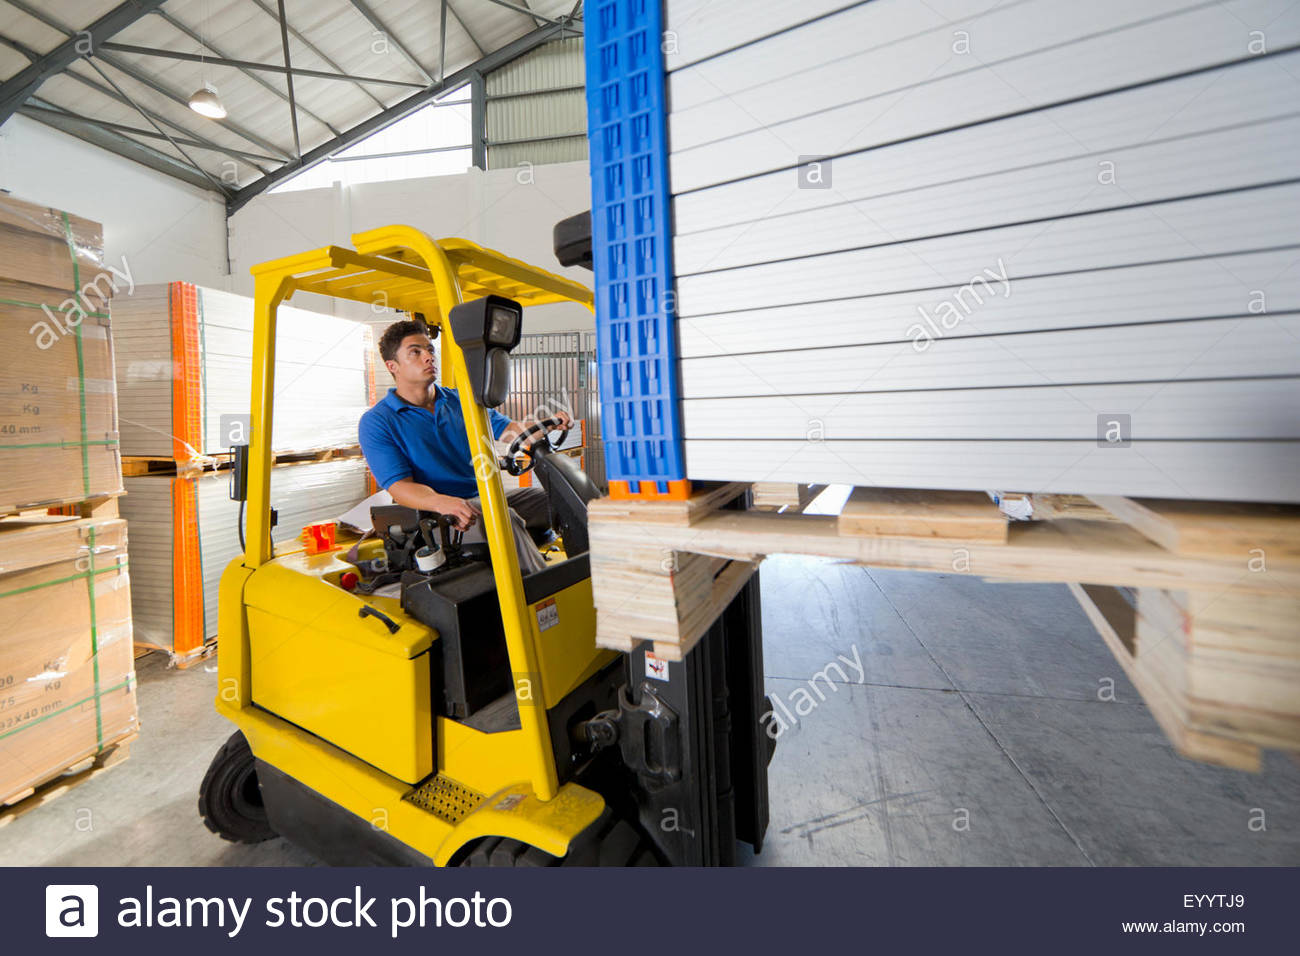 Forklift truck driver worker stacking panels in solar panel factory warehouse Stock Photo